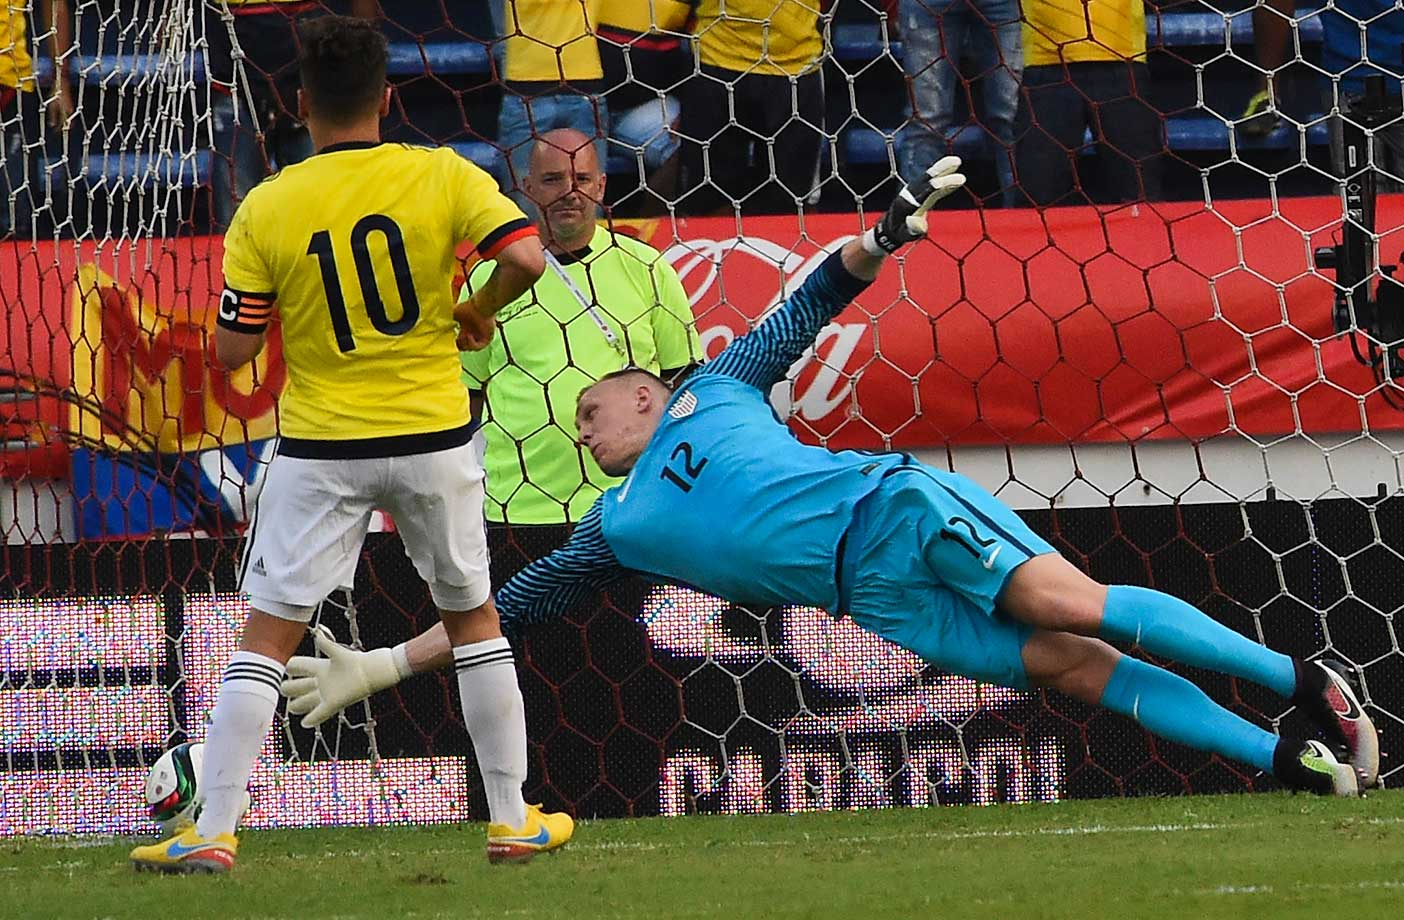 Colombia's Juan Fernando Quintero scores a penalty past USA's goalkeeper Coddy Crooper during their Rio 2016 Olympic qualifier match.